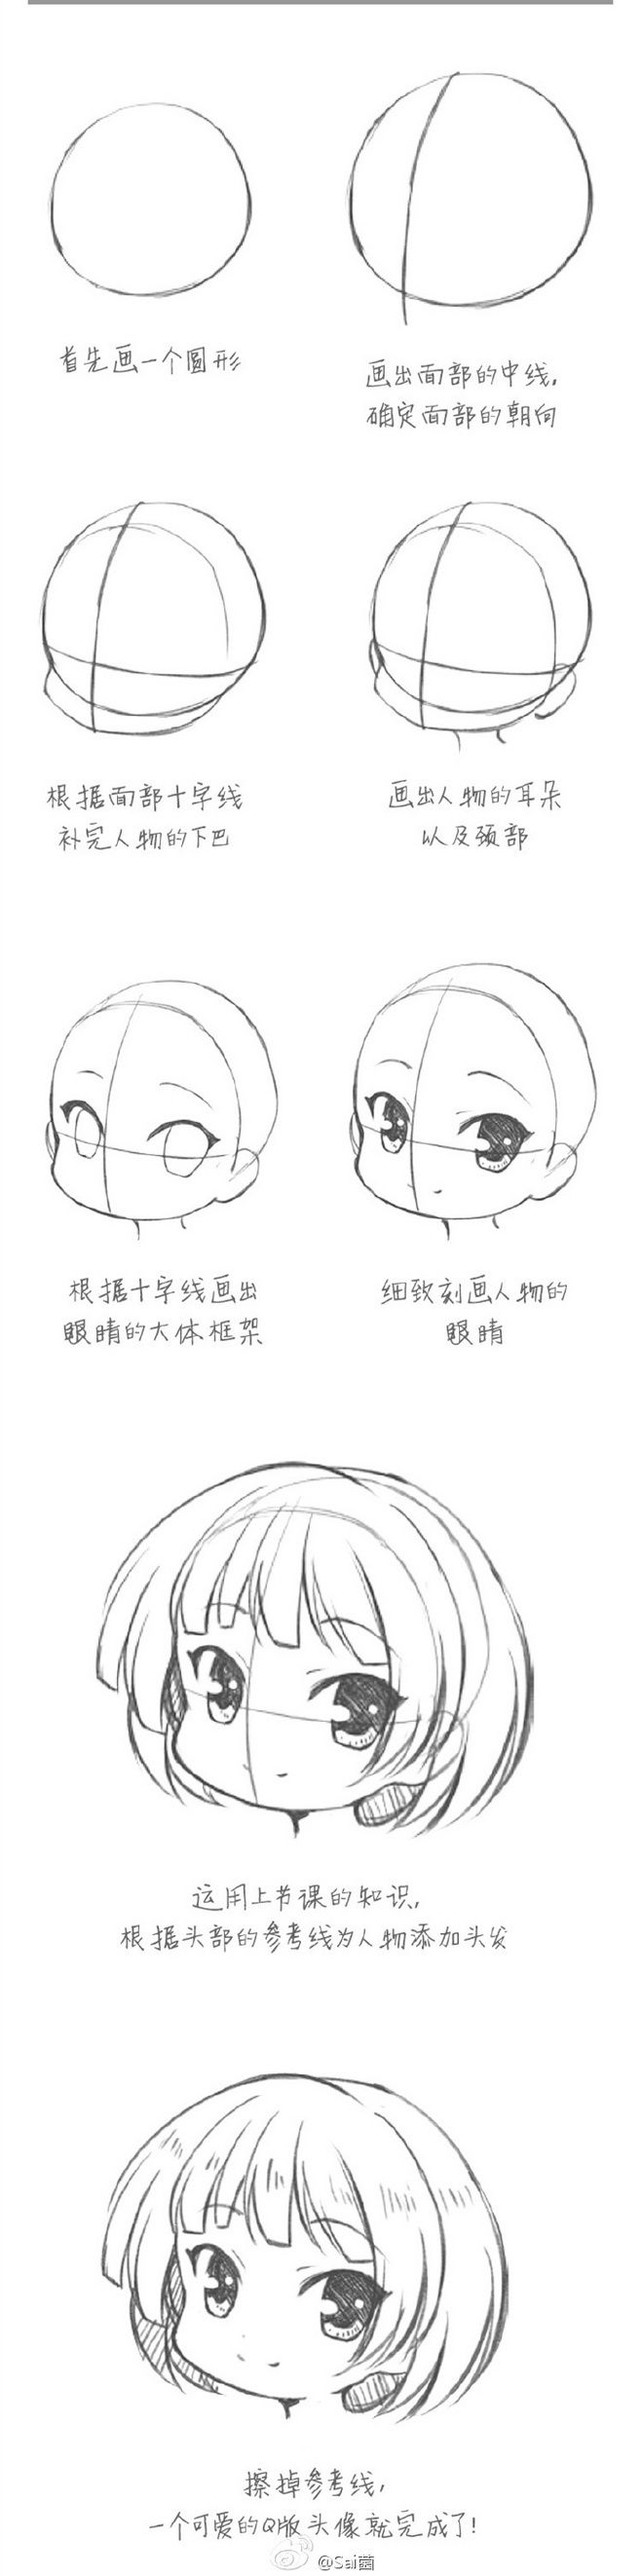 How To Draw A Chibi Girl Face